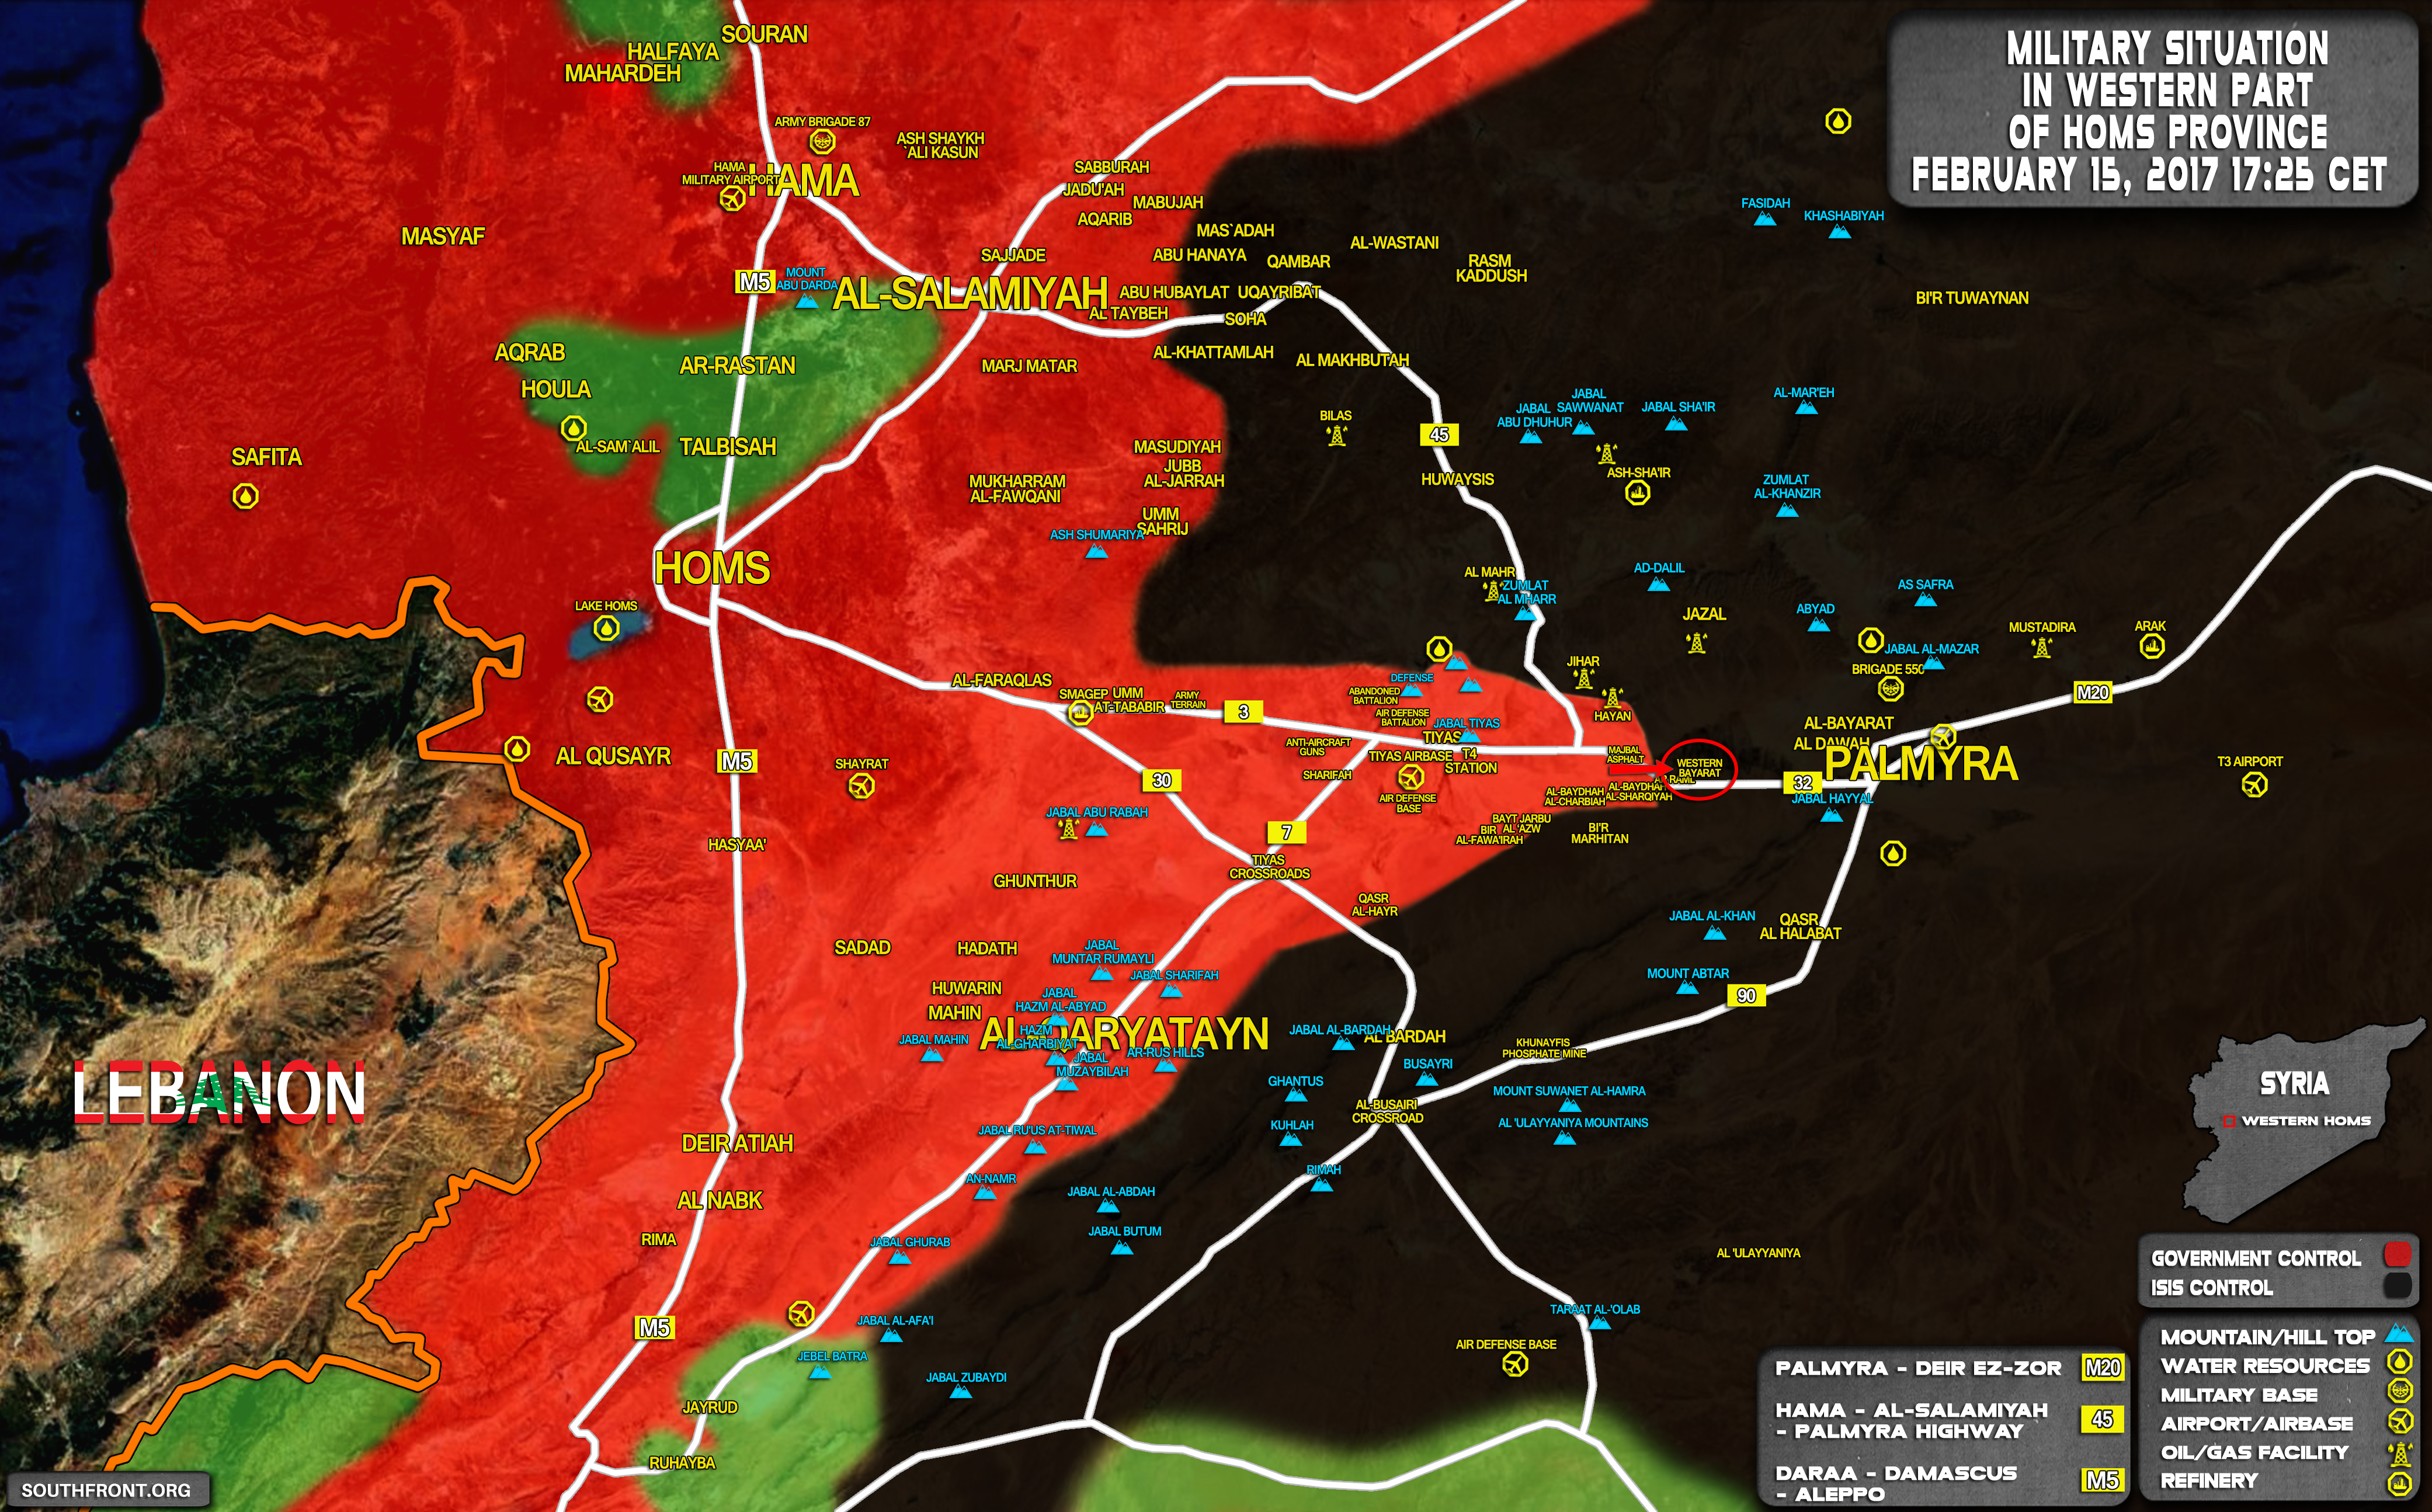 15feb17-25_Homs_Province_Syria_War_Map